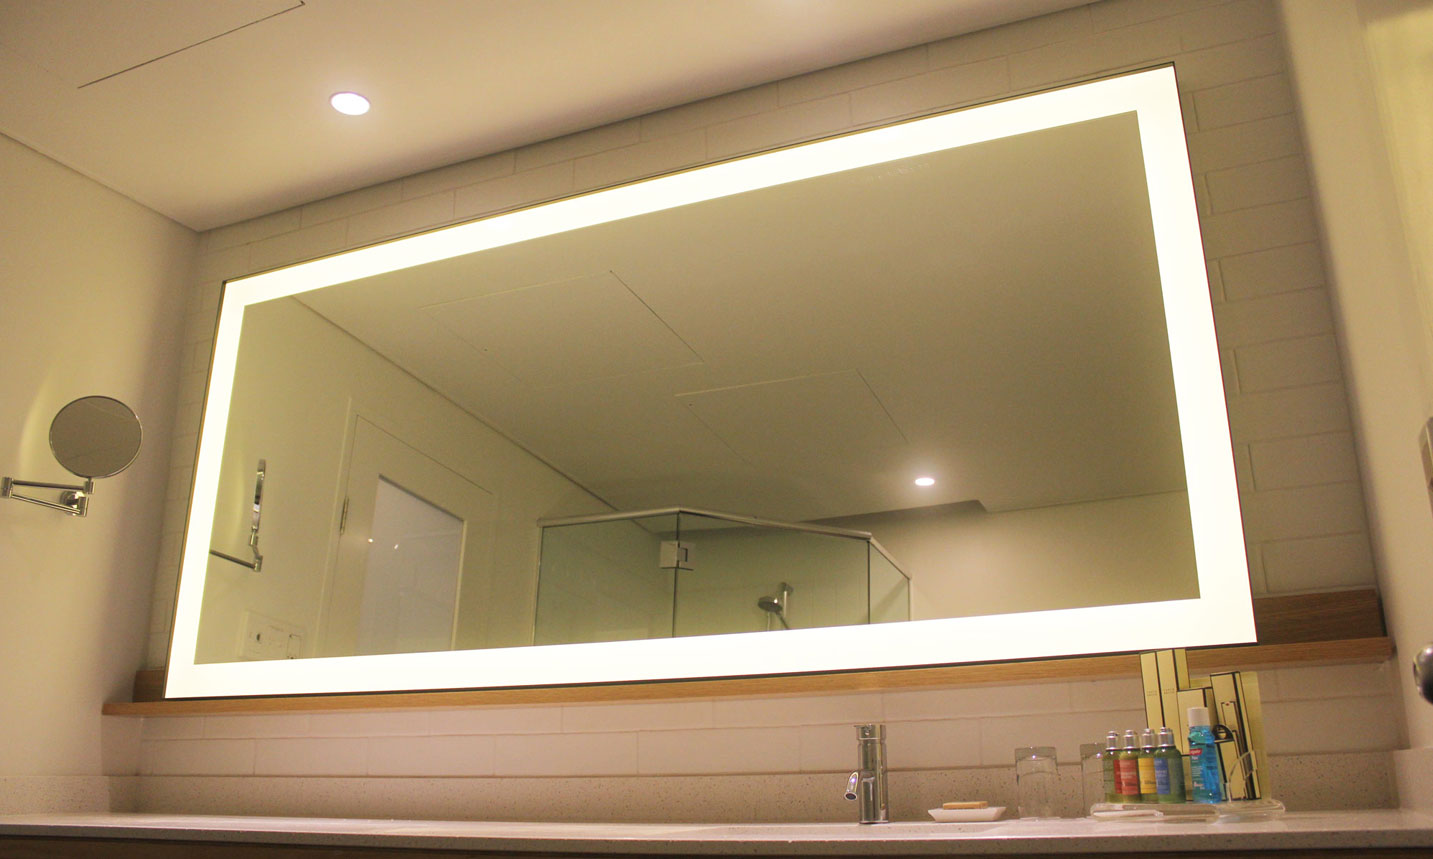 The Edge Metal Frame Lighted Mirror pictured in a 5 star hotel bathroom.